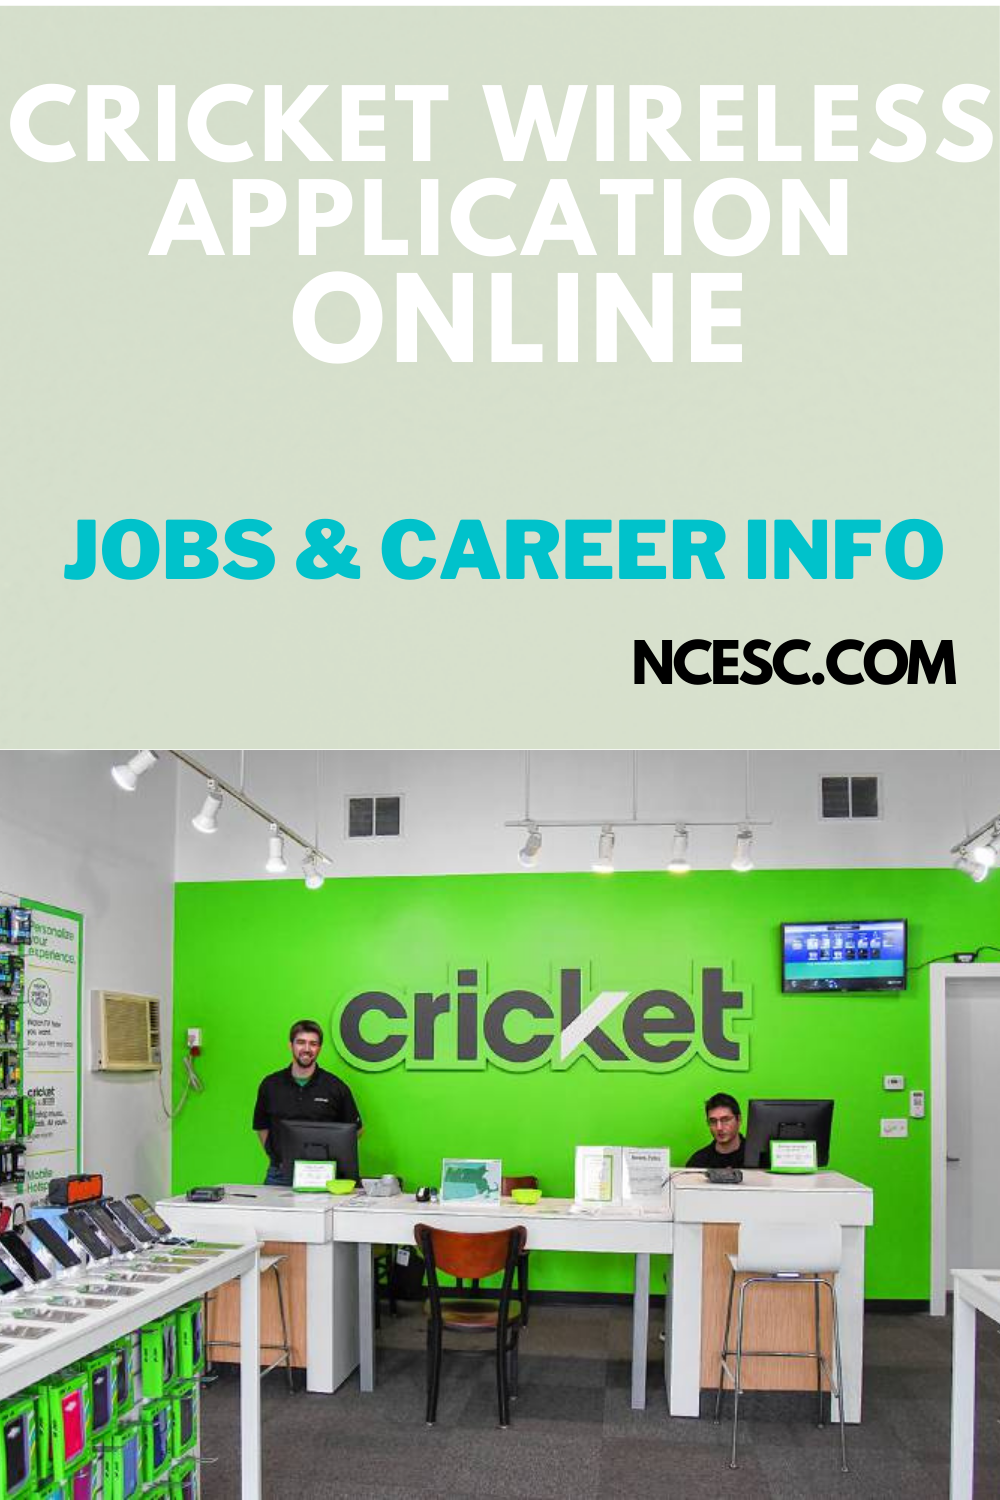 the cricket wireless application guide